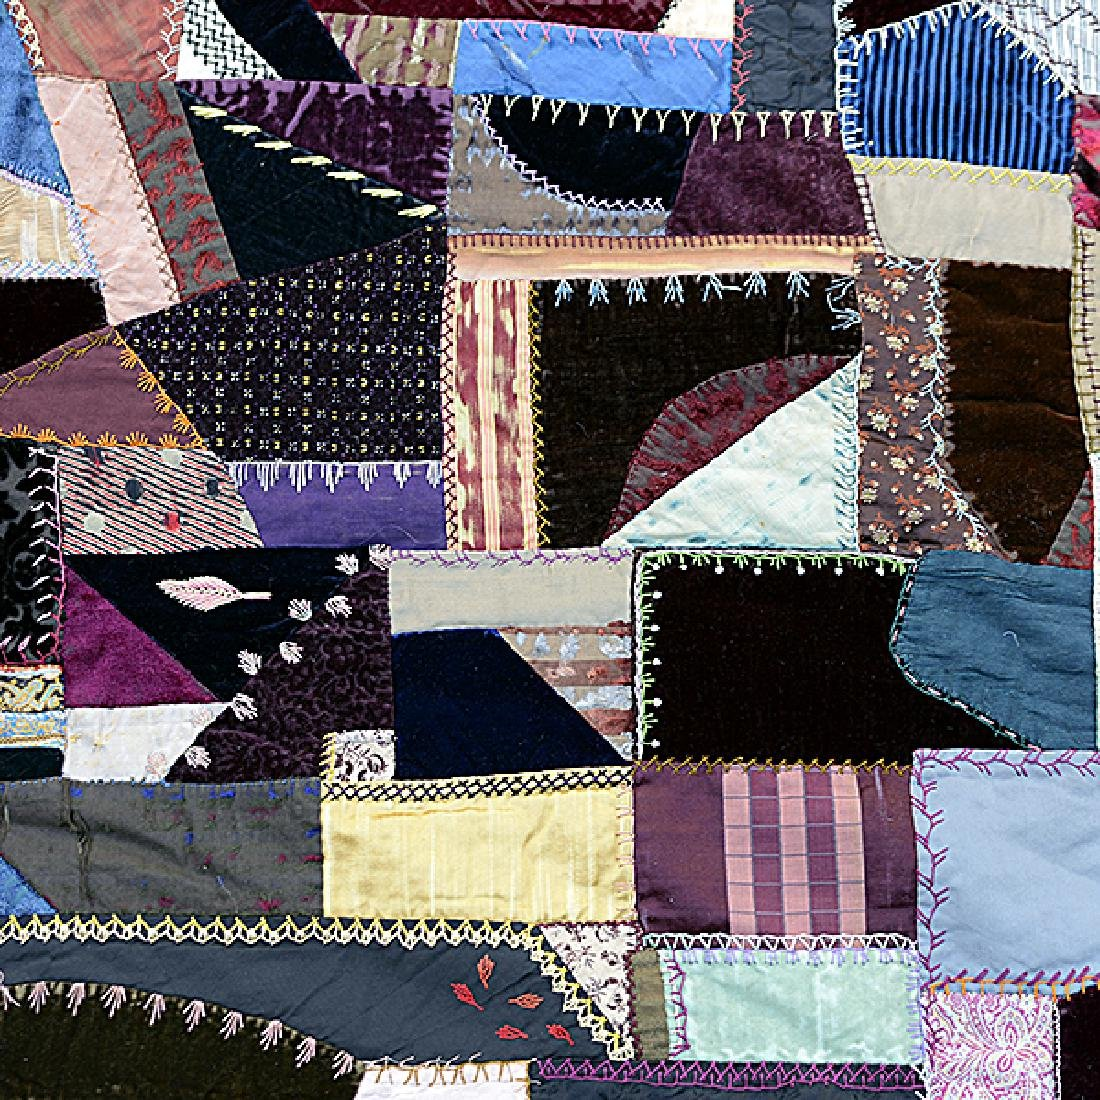 American Crazy Quilt with Embroidered Figural Border - 3